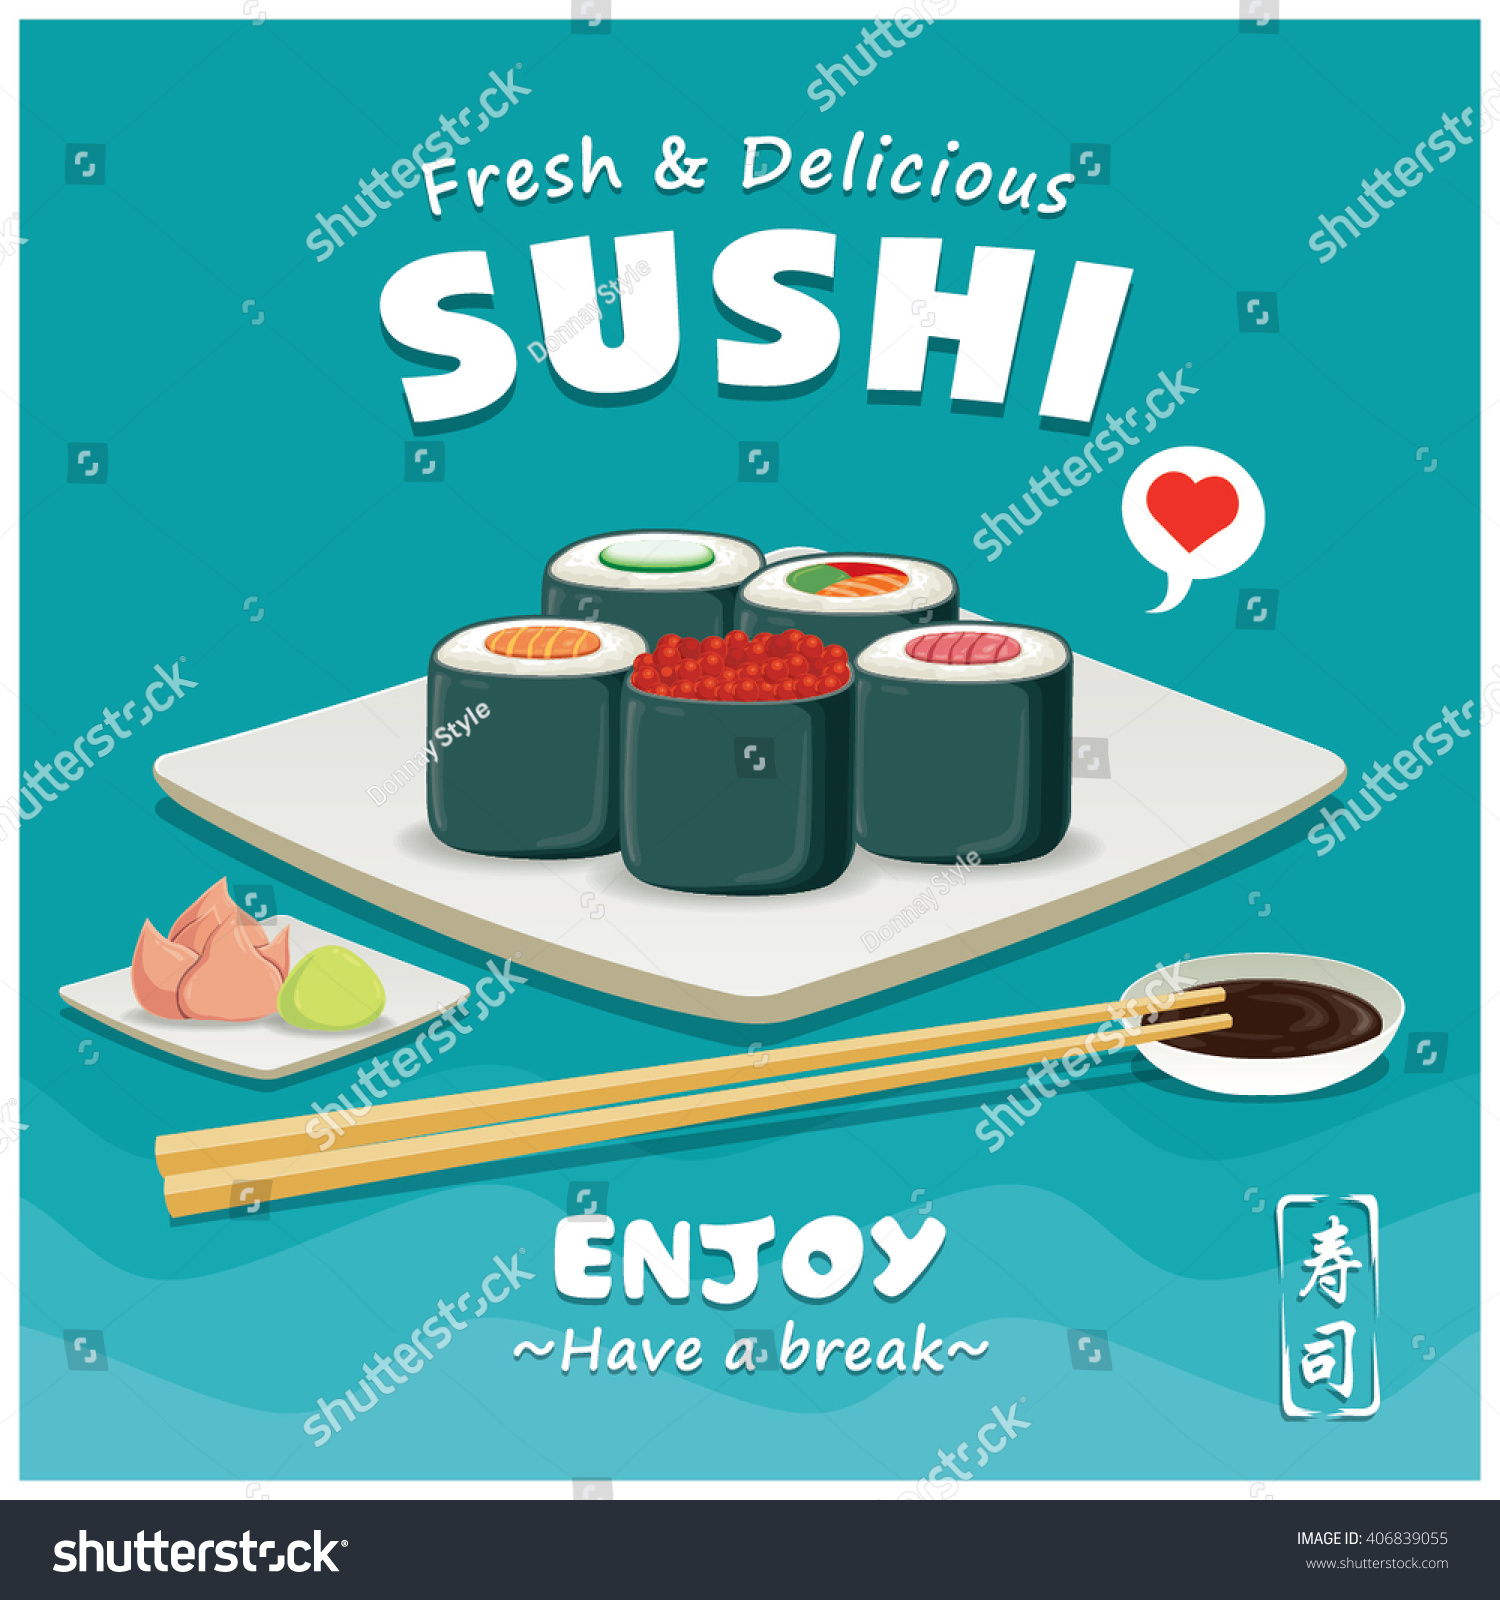 Poster design word - Vintage Sushi Poster Design Chinese Word Means Sushi